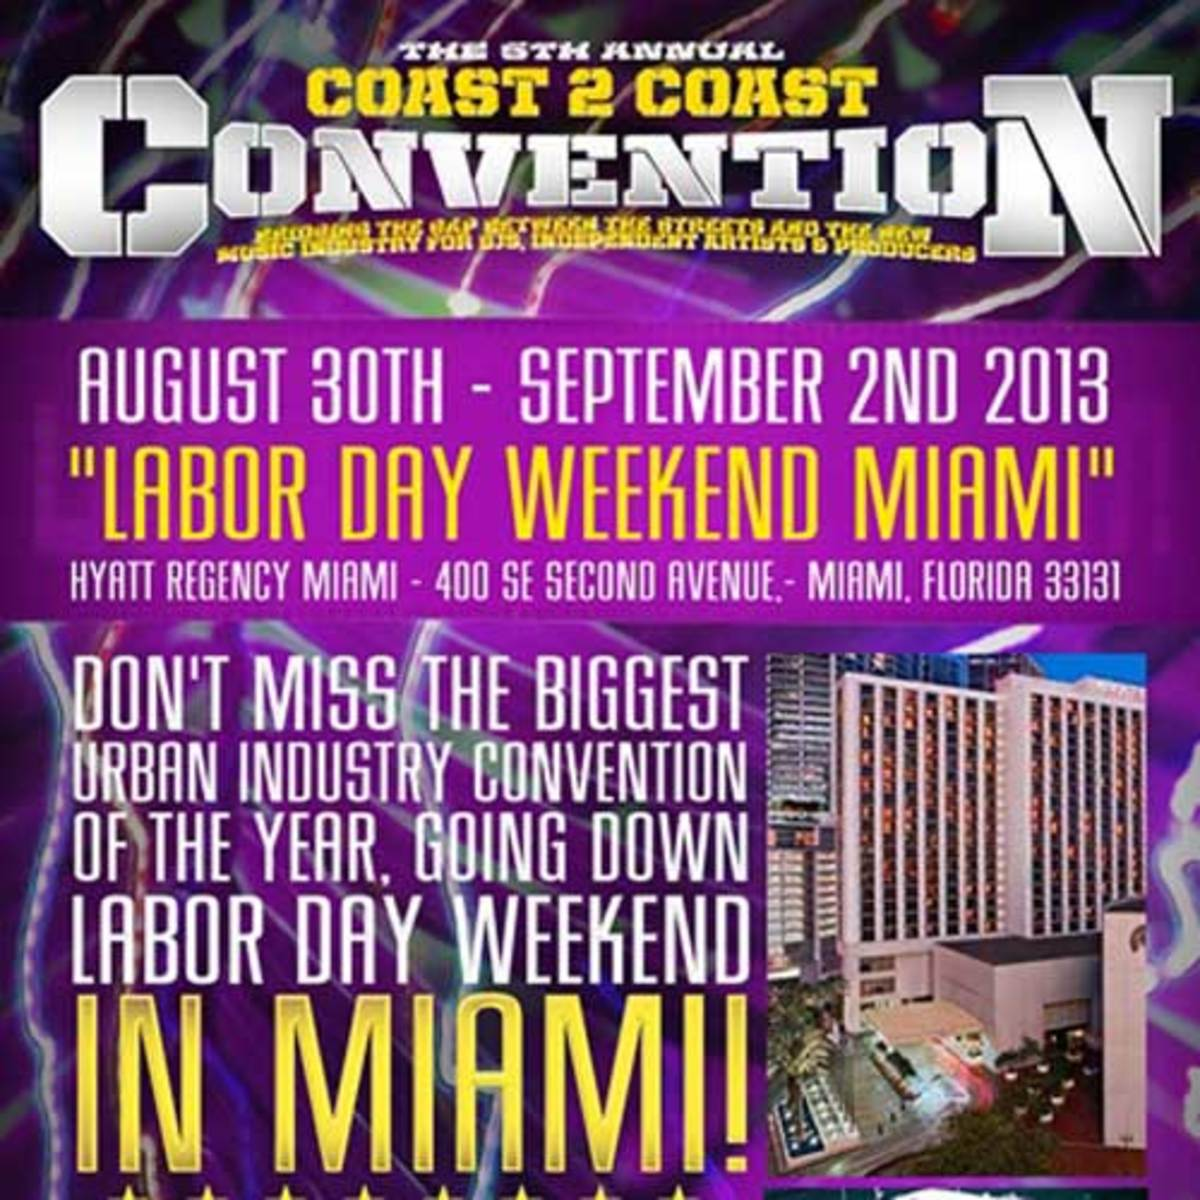 coast2coast-convention1.jpg